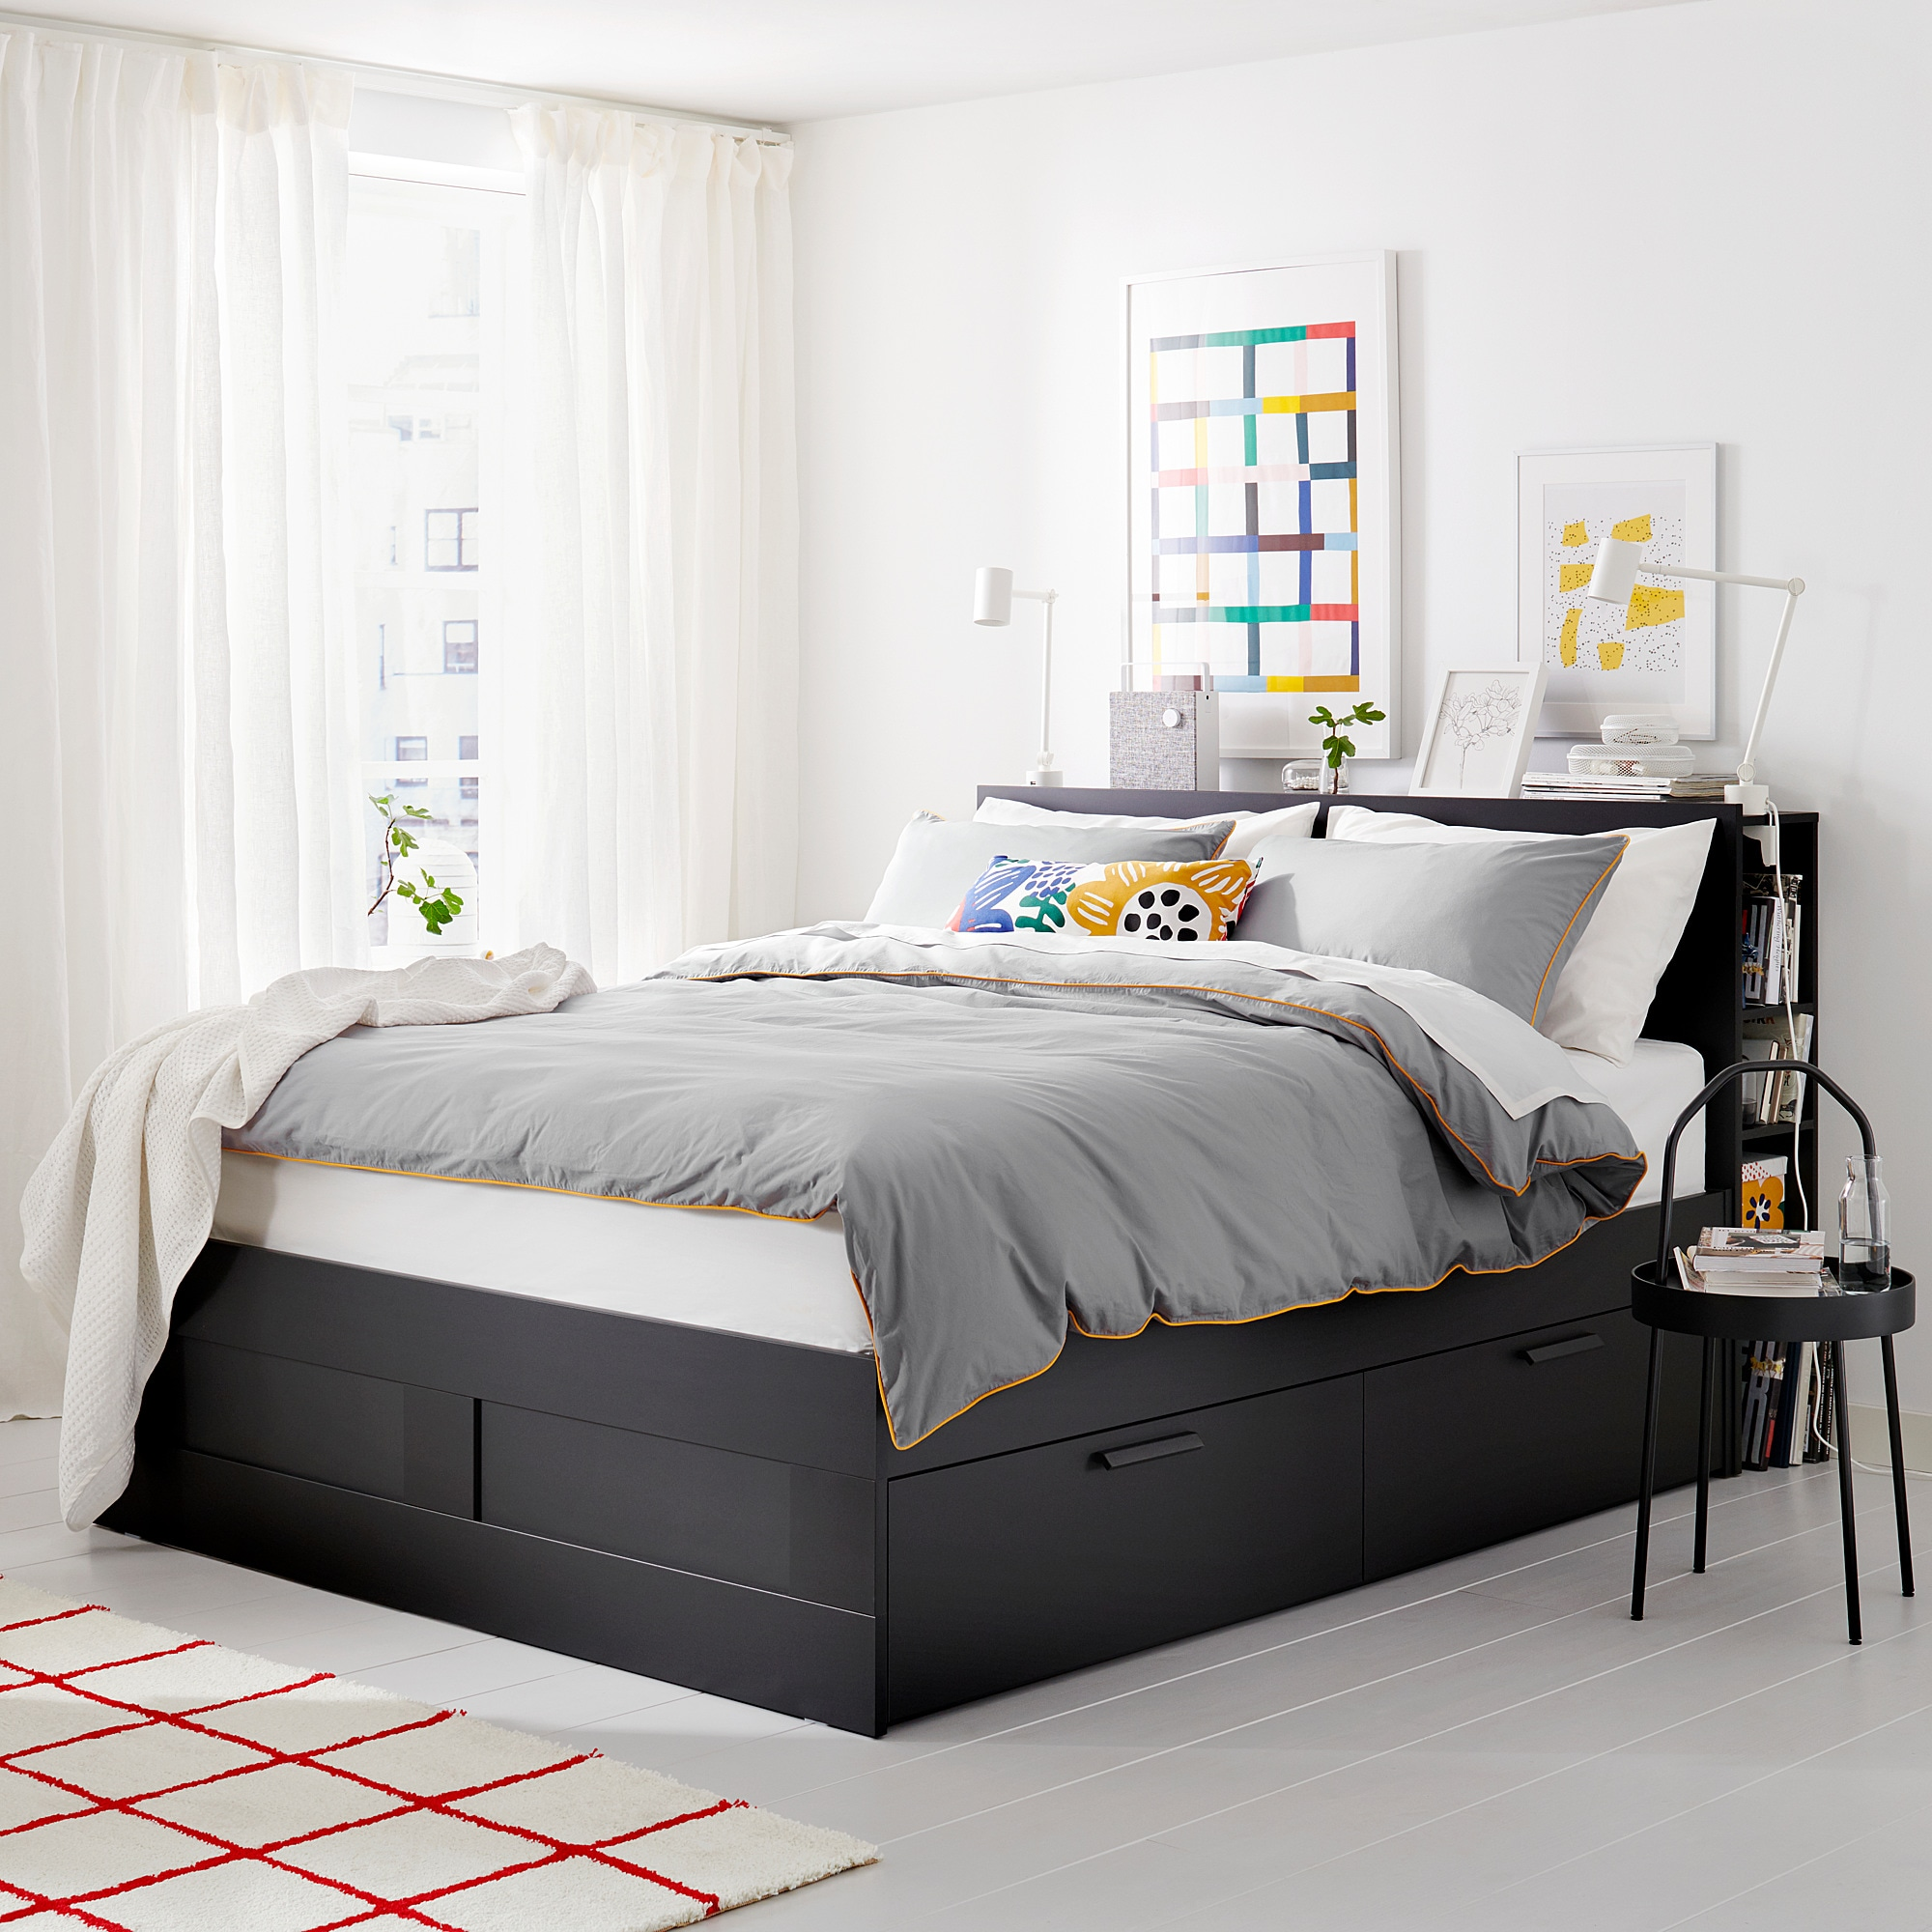 Brimnes Bed Frame With Storage Amp Headboard Black Lur 246 Y